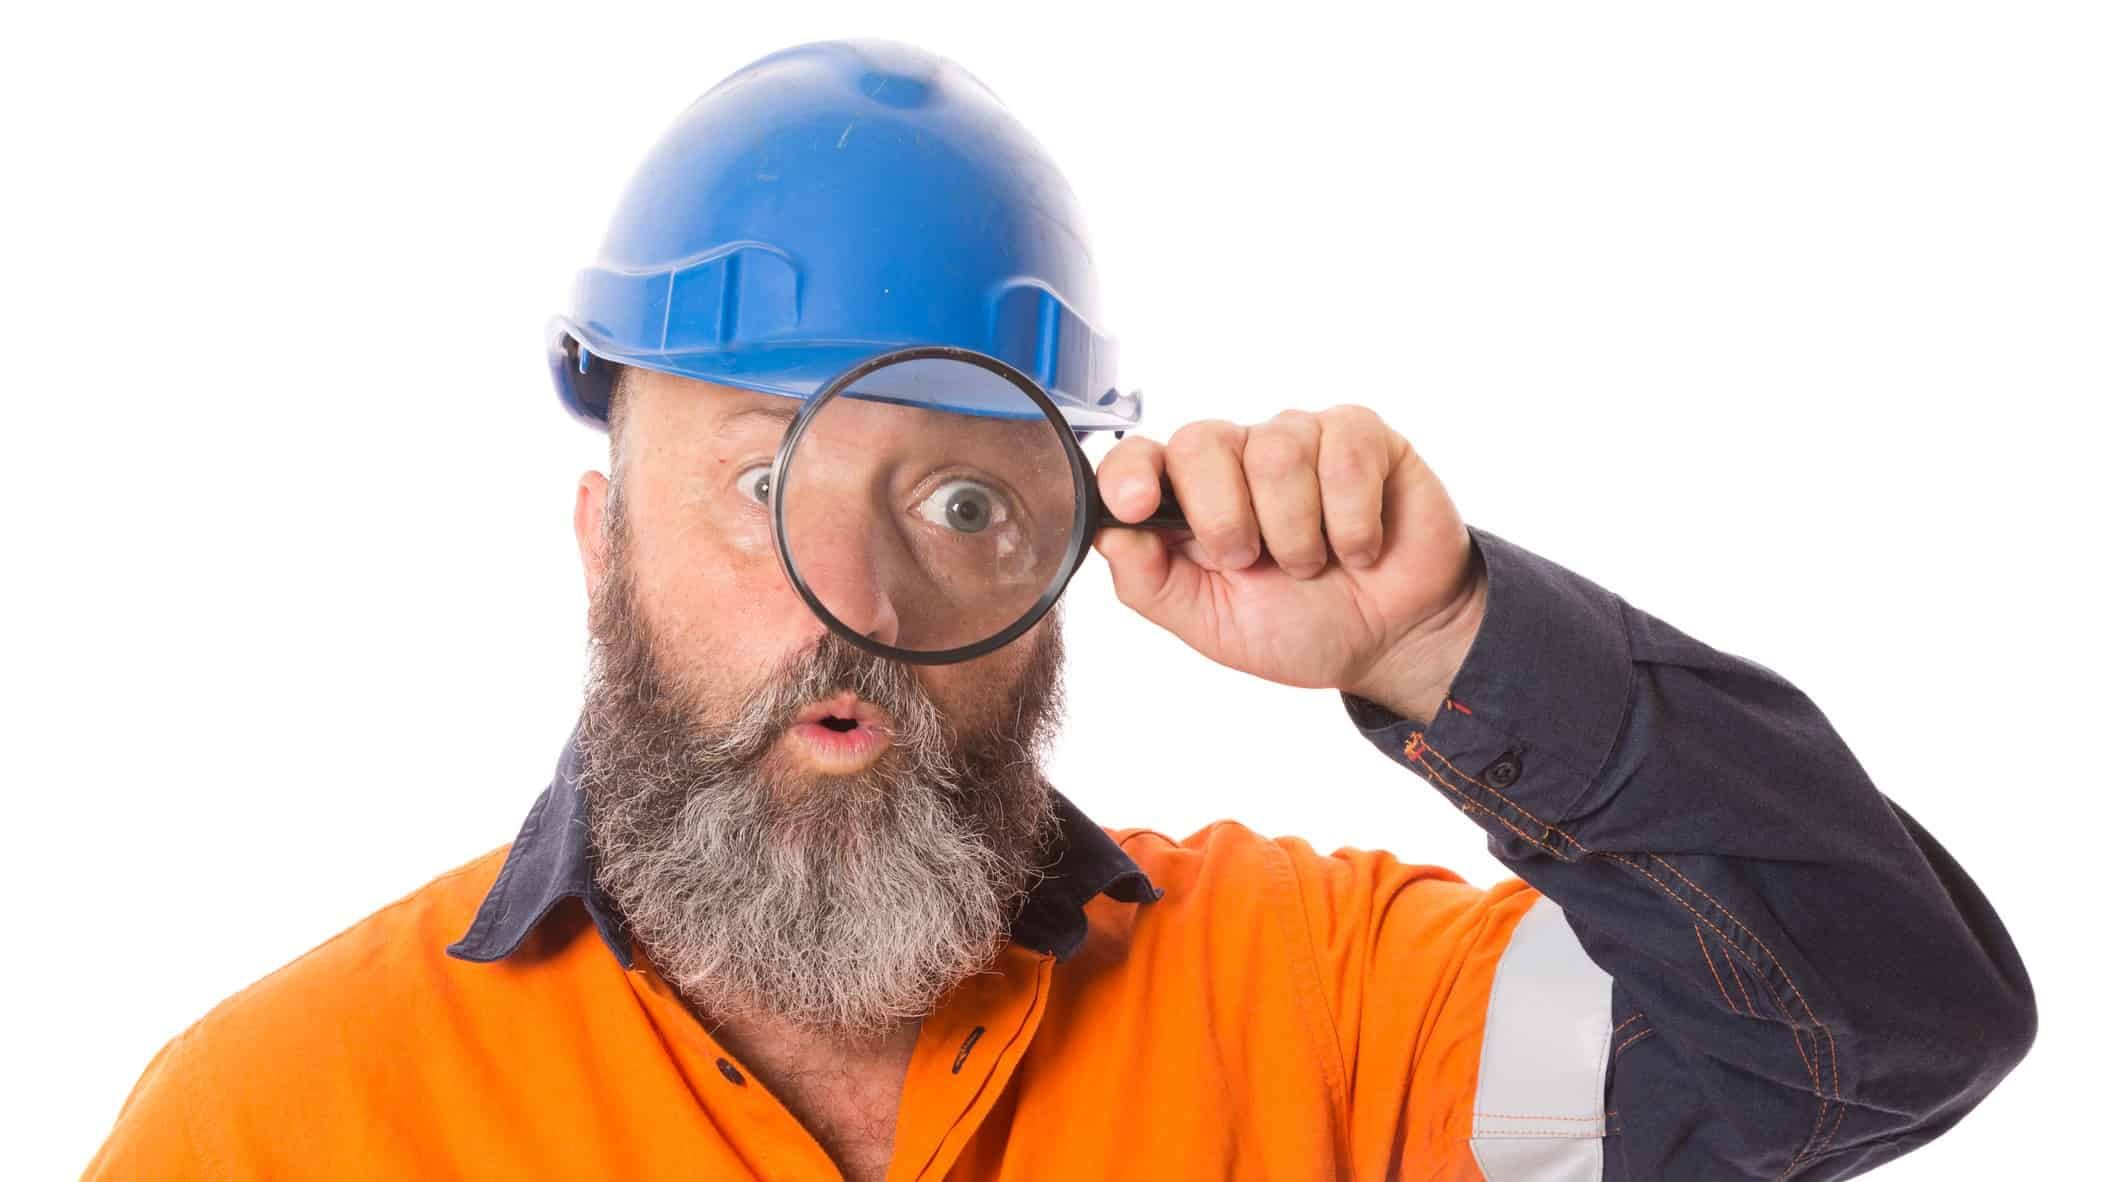 industrial asx share price on watch represented by builder looking through magnifying glass